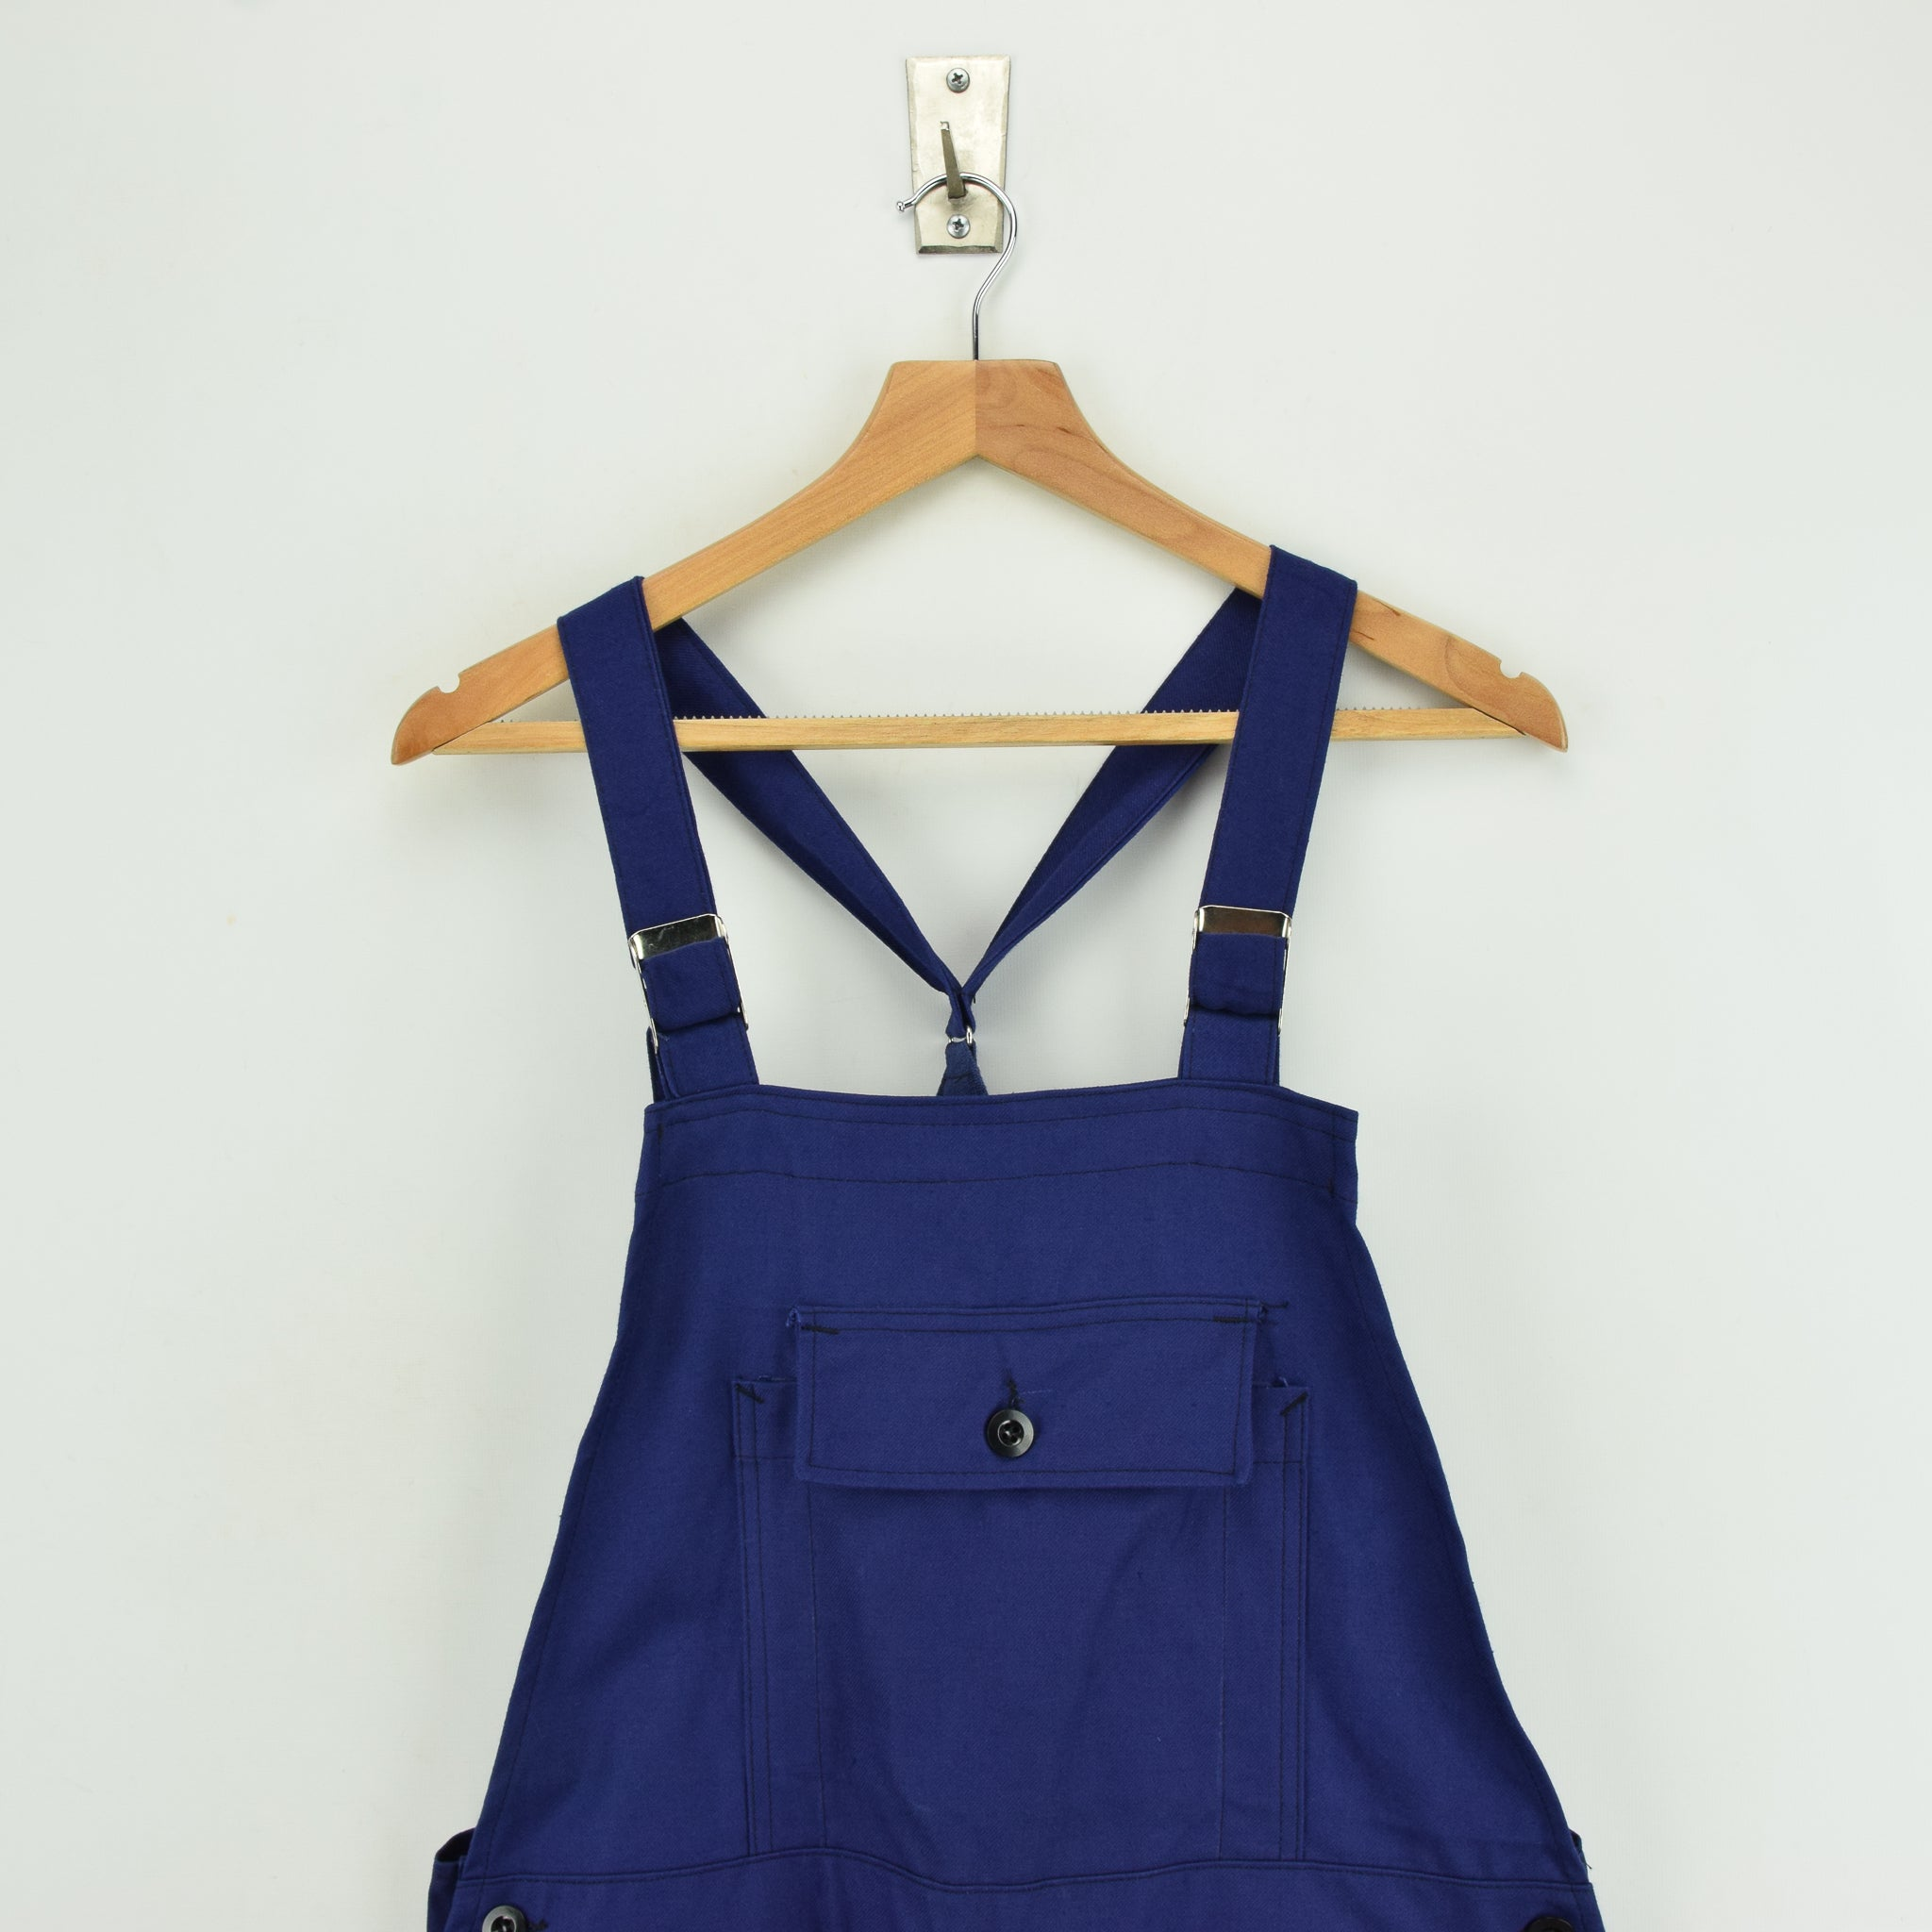 Vintage French Deadstock Workwear Dungarees Indigo Blue Overalls Trousers S front chest